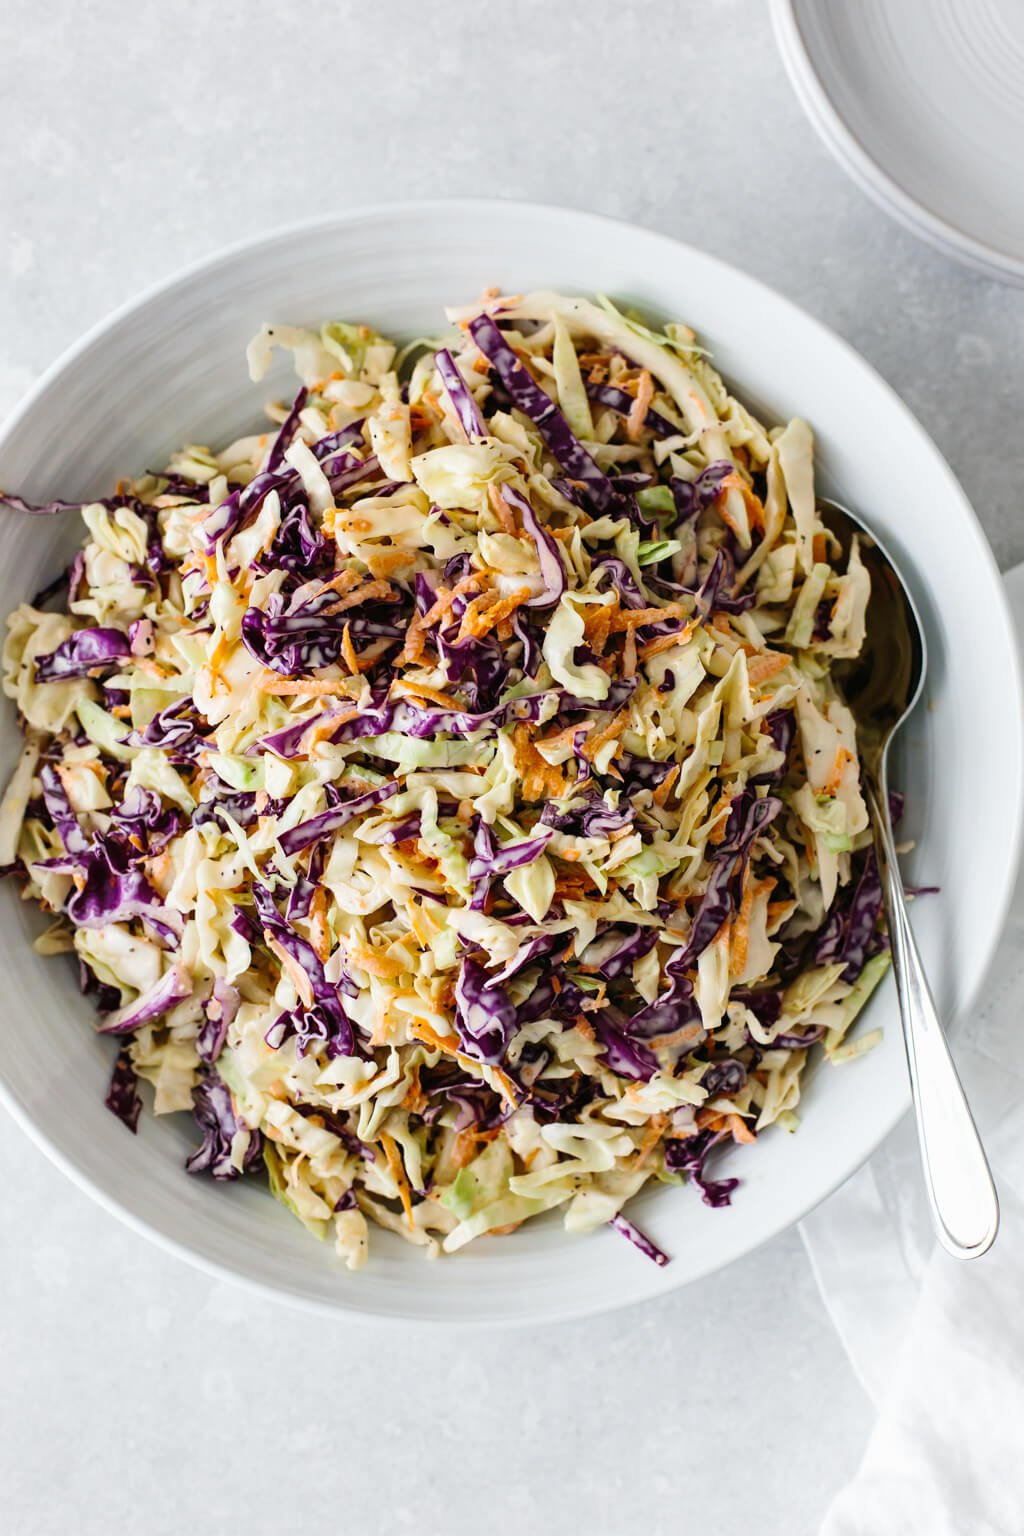 Coleslaw in a white bowl.